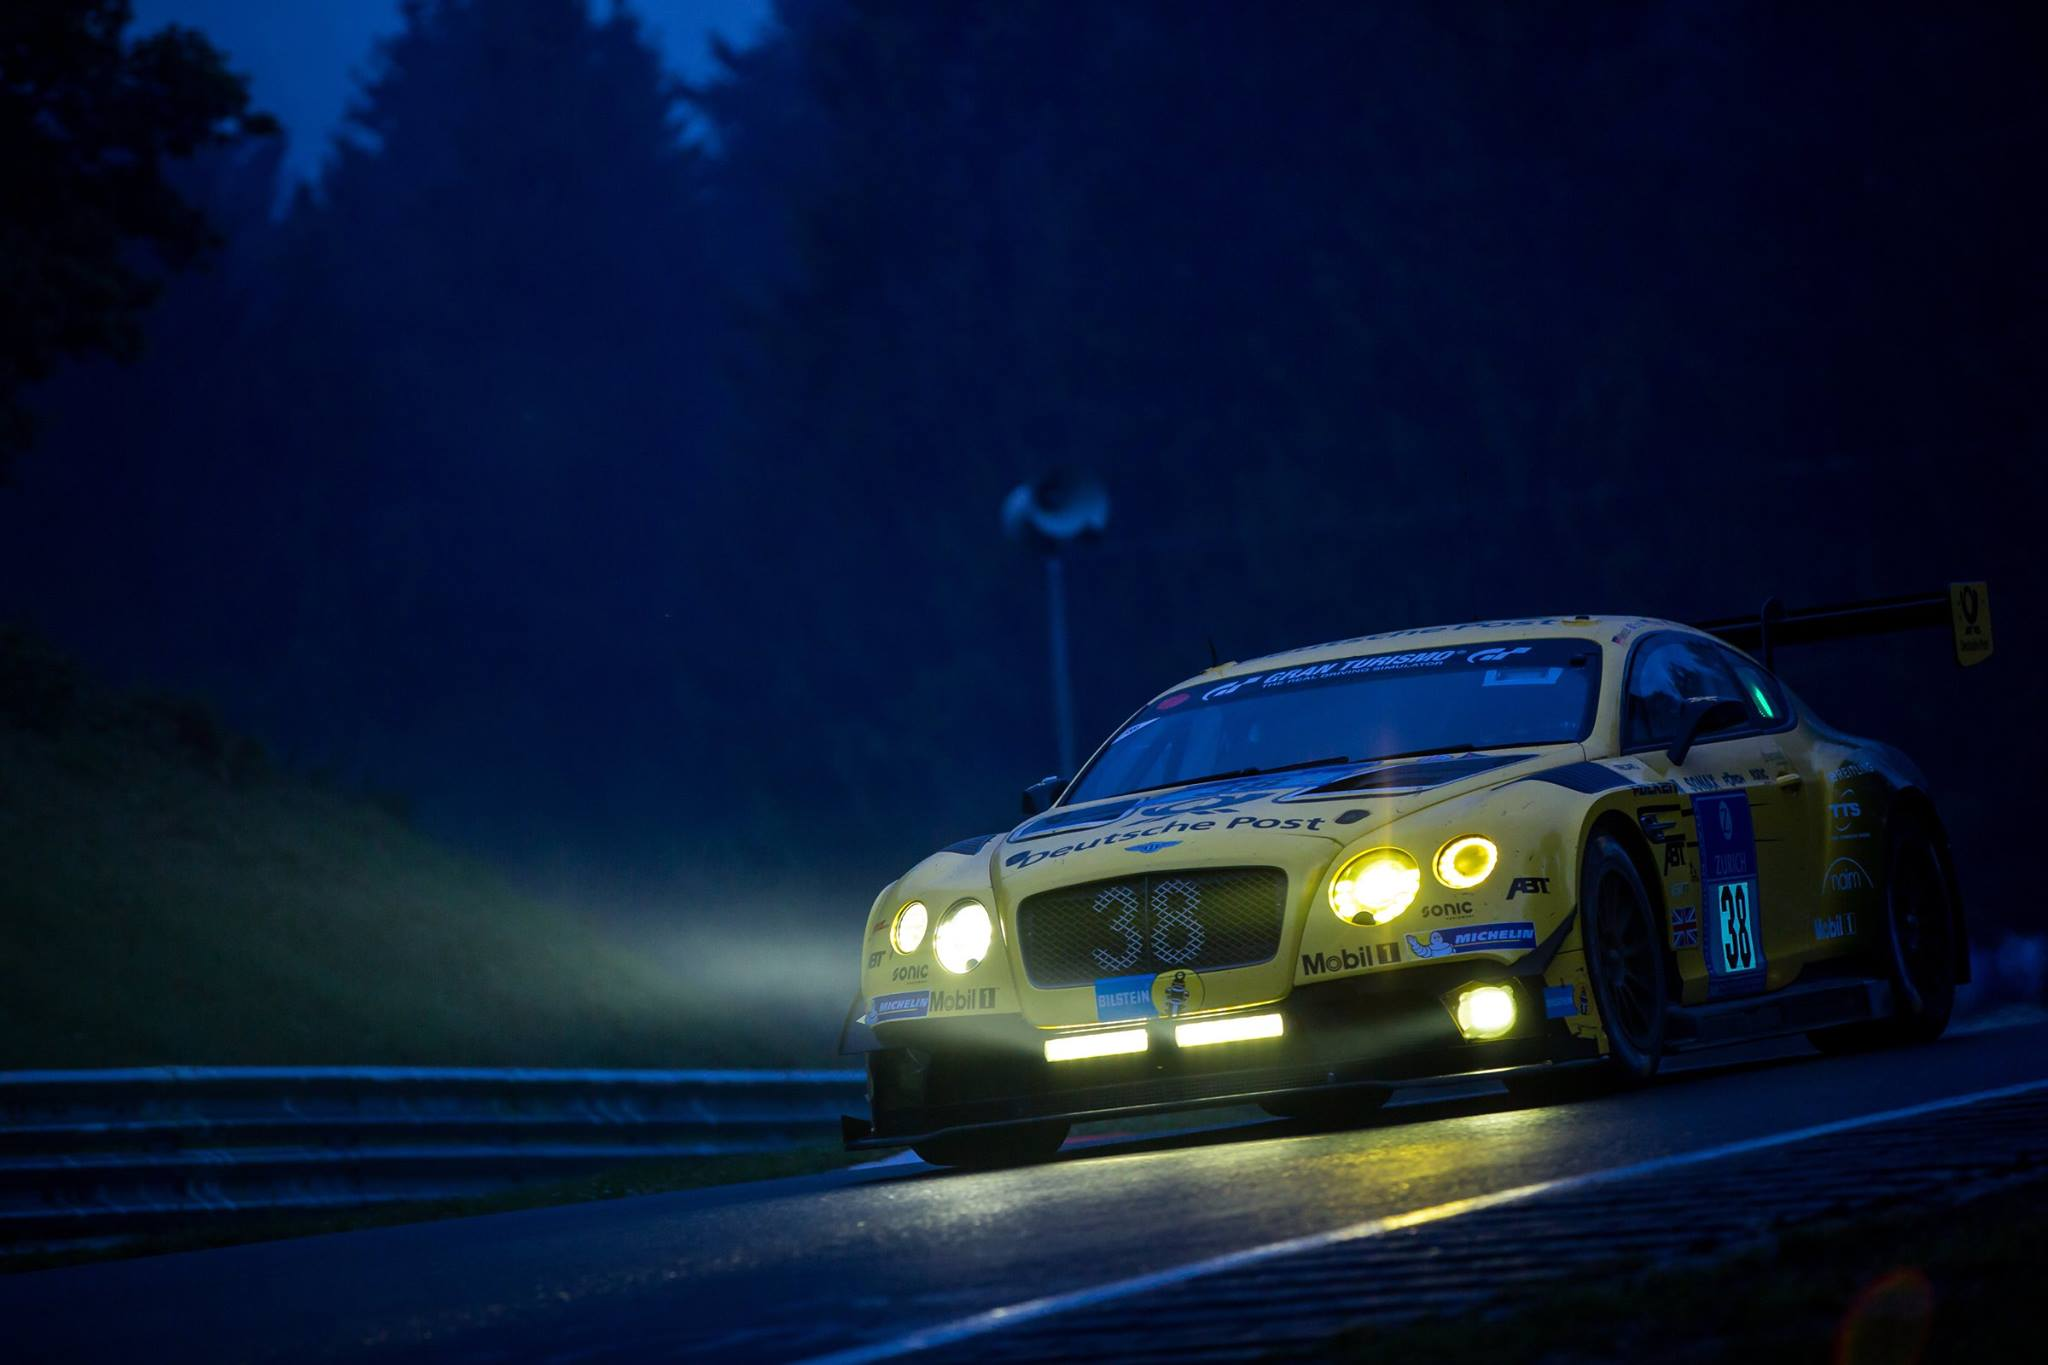 Mercedes Amg Sweeps The Podium At The Nurburgring 24 Hours